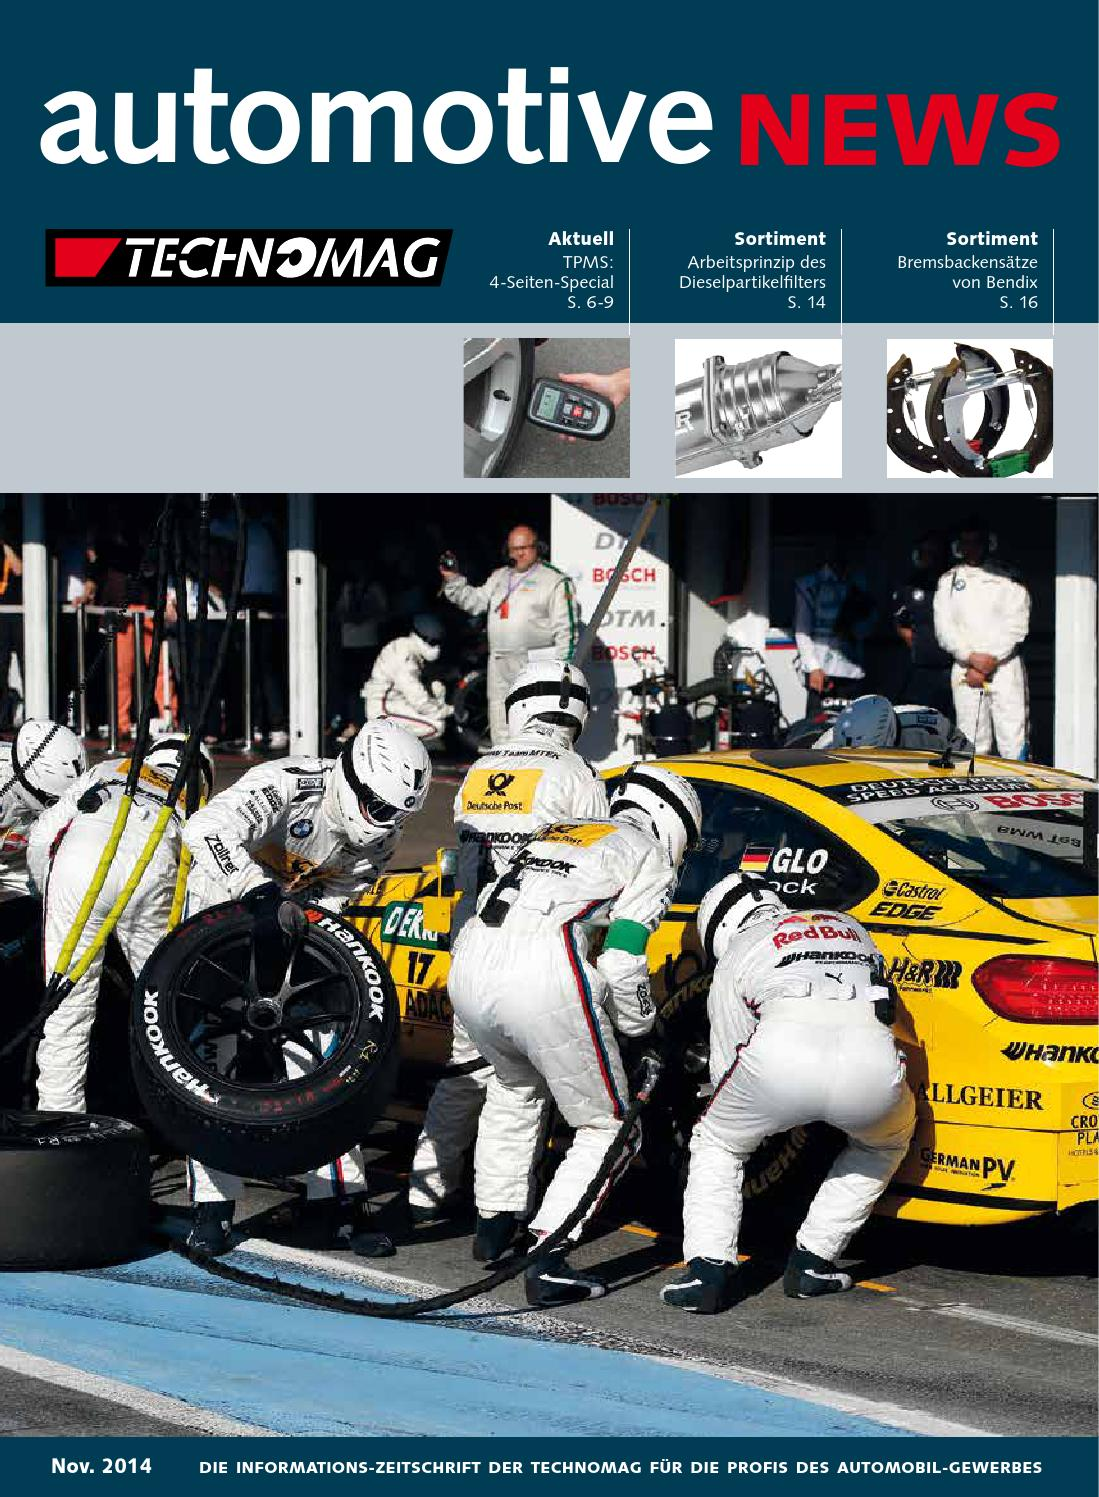 Auto news 5 14 de by technomag-ch - issuu